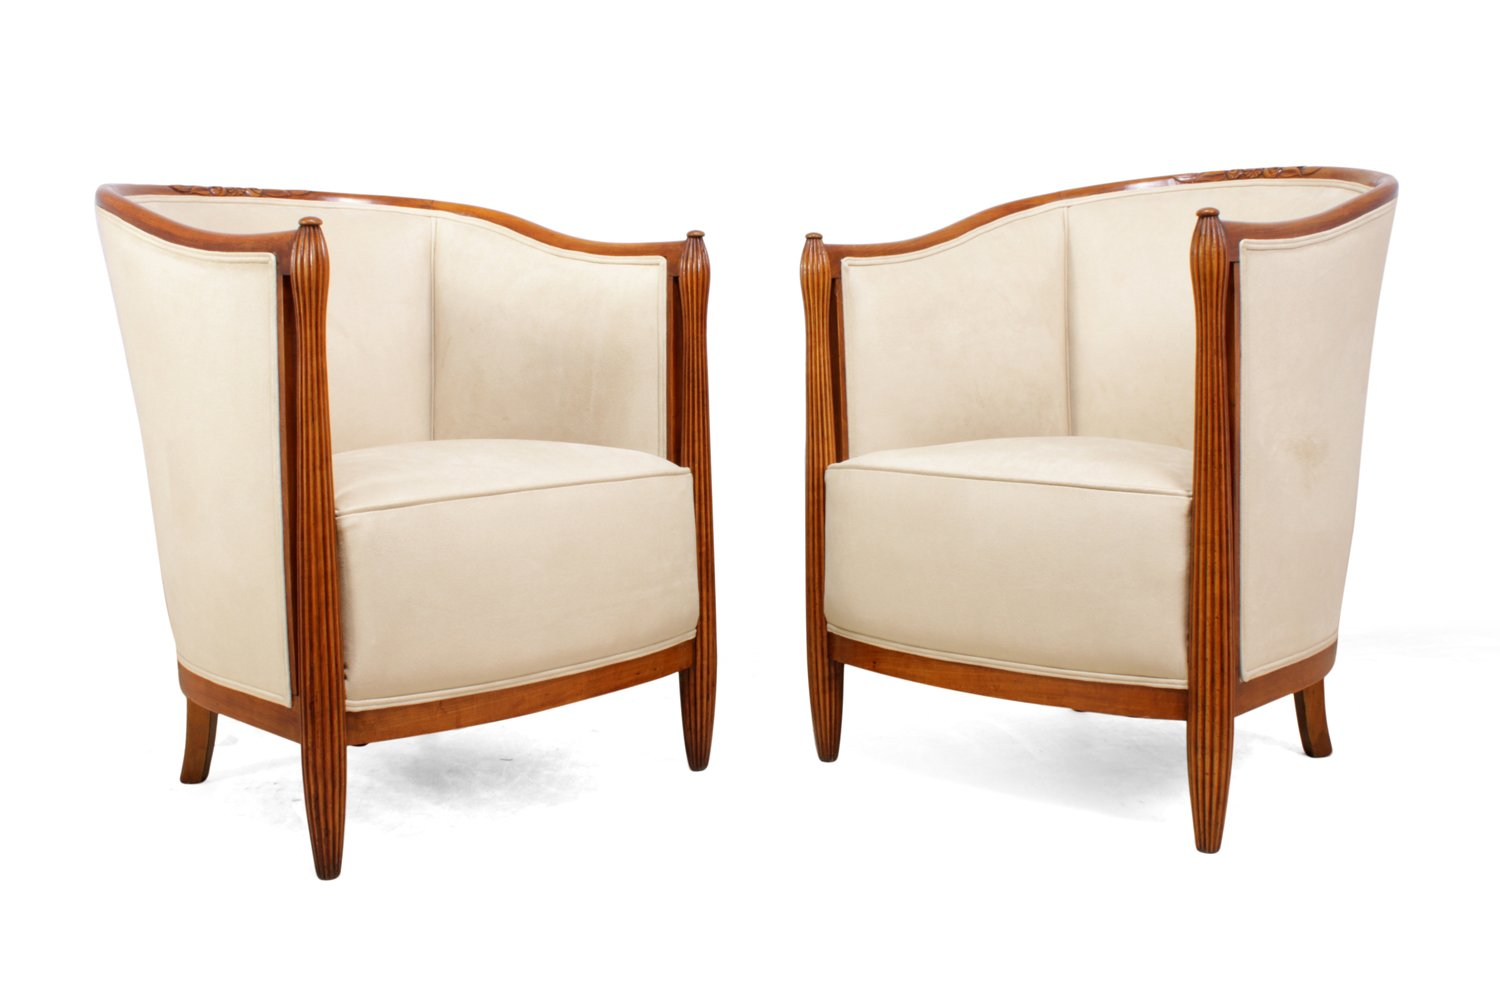 Art Deco Sessel von Paul Folllot, 1920er, 2er Set